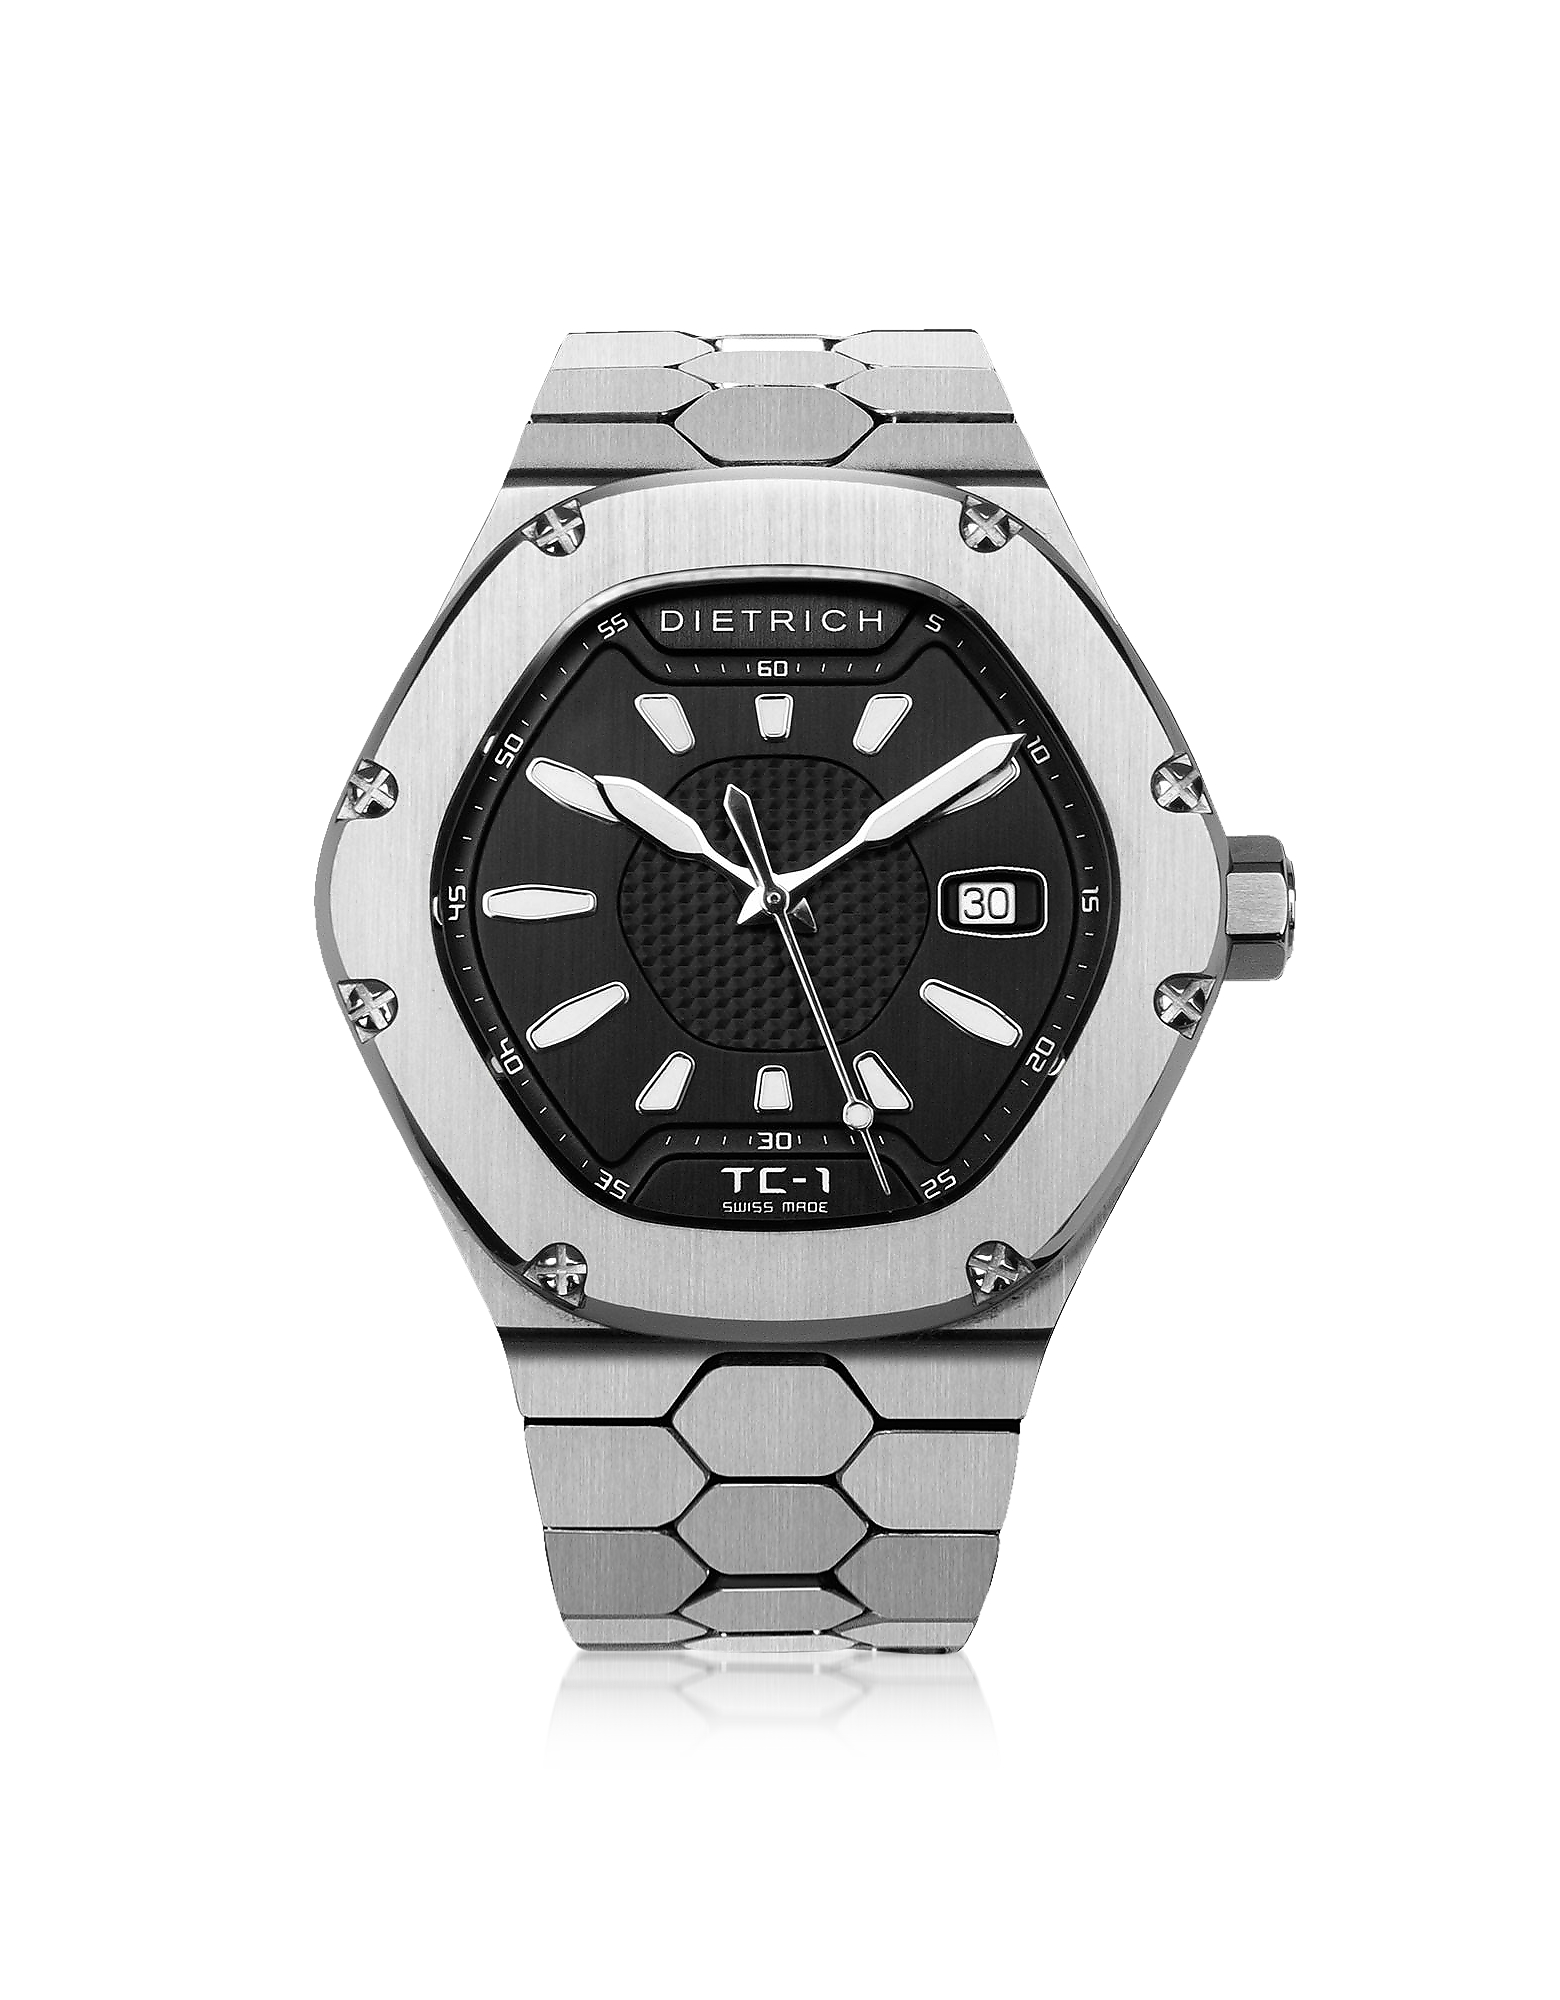 Dietrich Men's Watches, TC-1 SS 316L Steel w/White Luminova and Black Dial